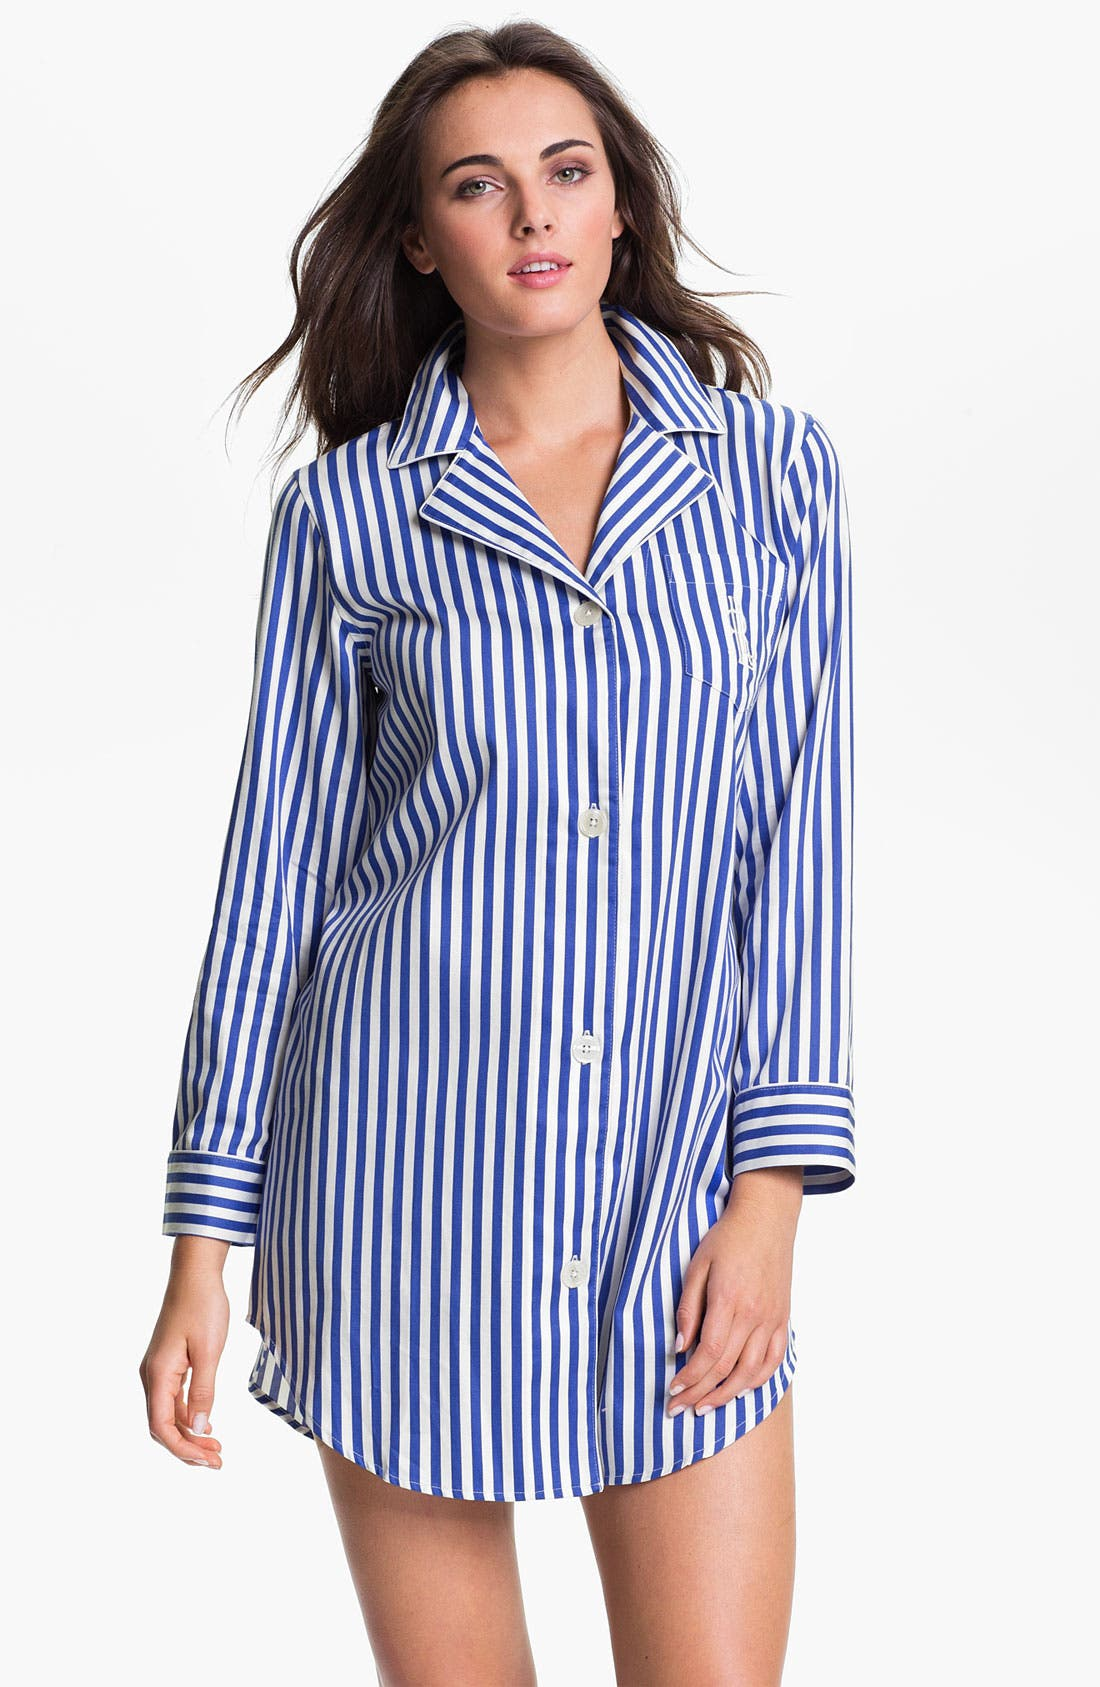 Alternate Image 1 Selected - Lauren Ralph Lauren Sleepwear Stripe Sateen Nightshirt